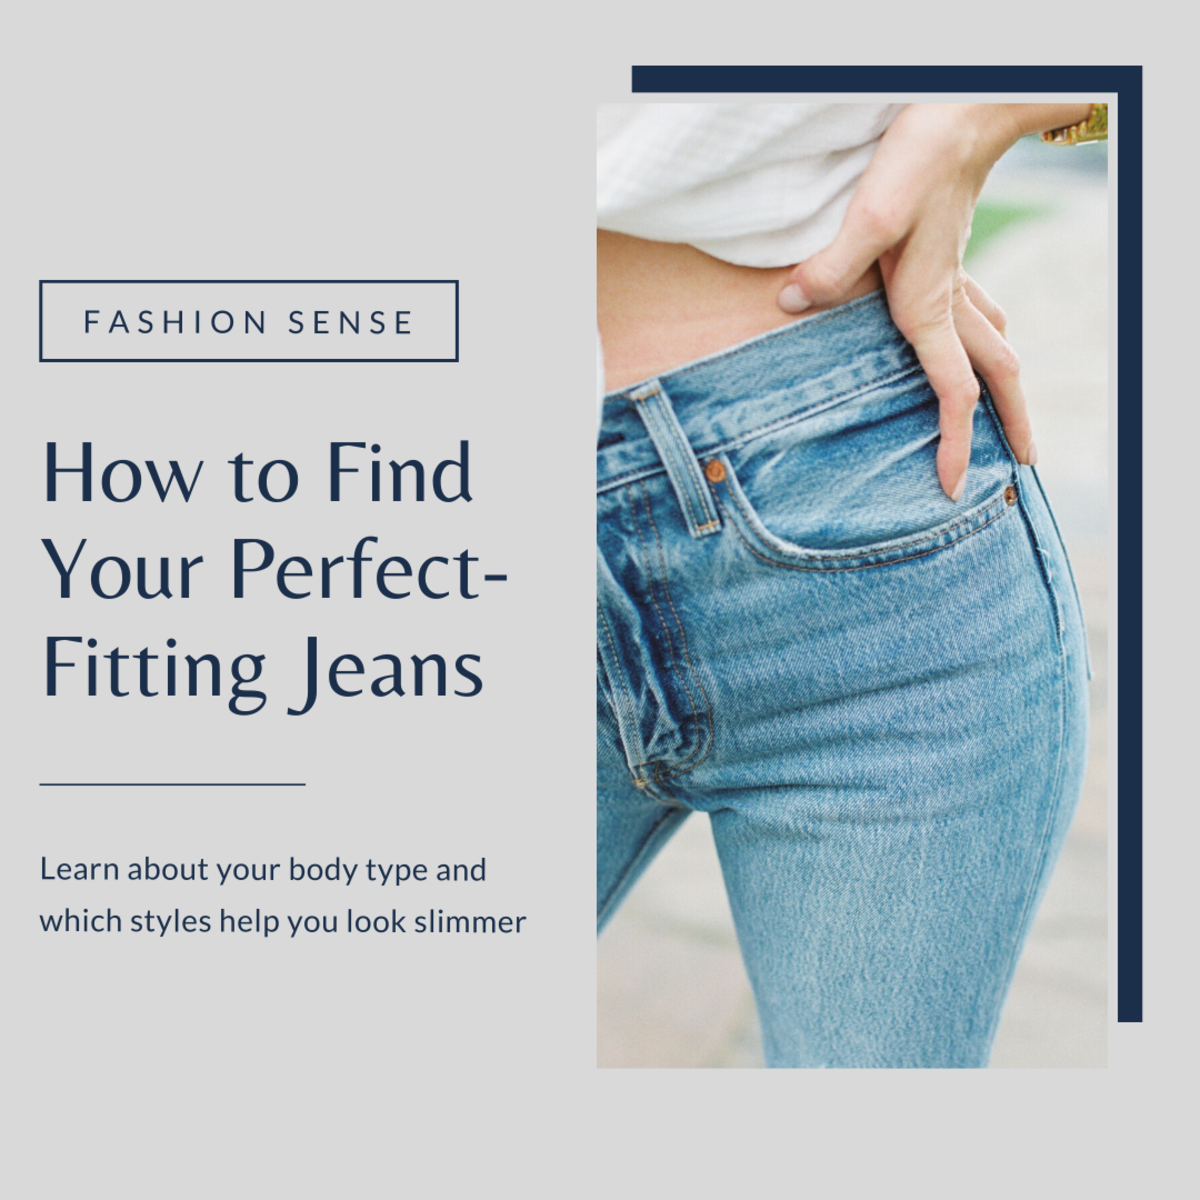 This article will help you learn more about your body type and what styles of jeans will help you look your best.